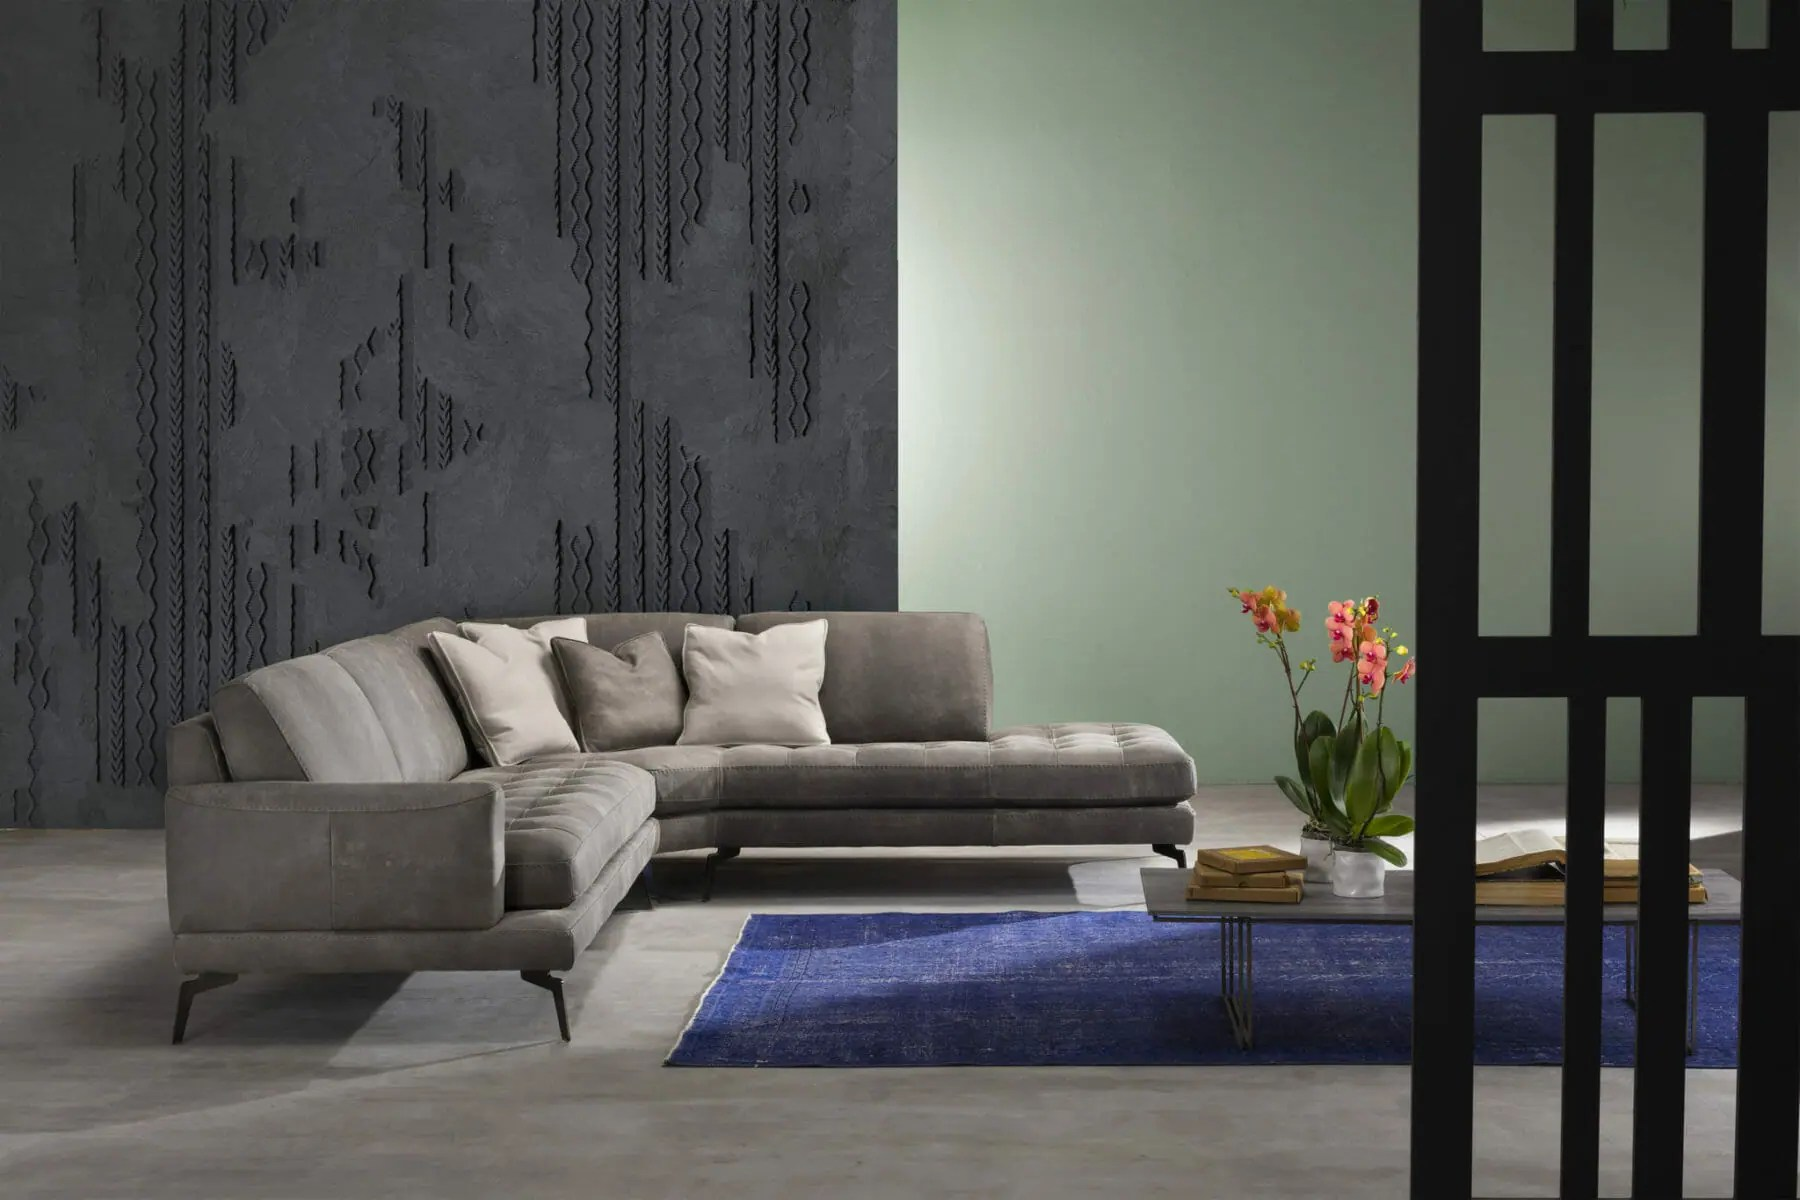 The Living Sectional Modern Sectional Sofa San Francisco Design